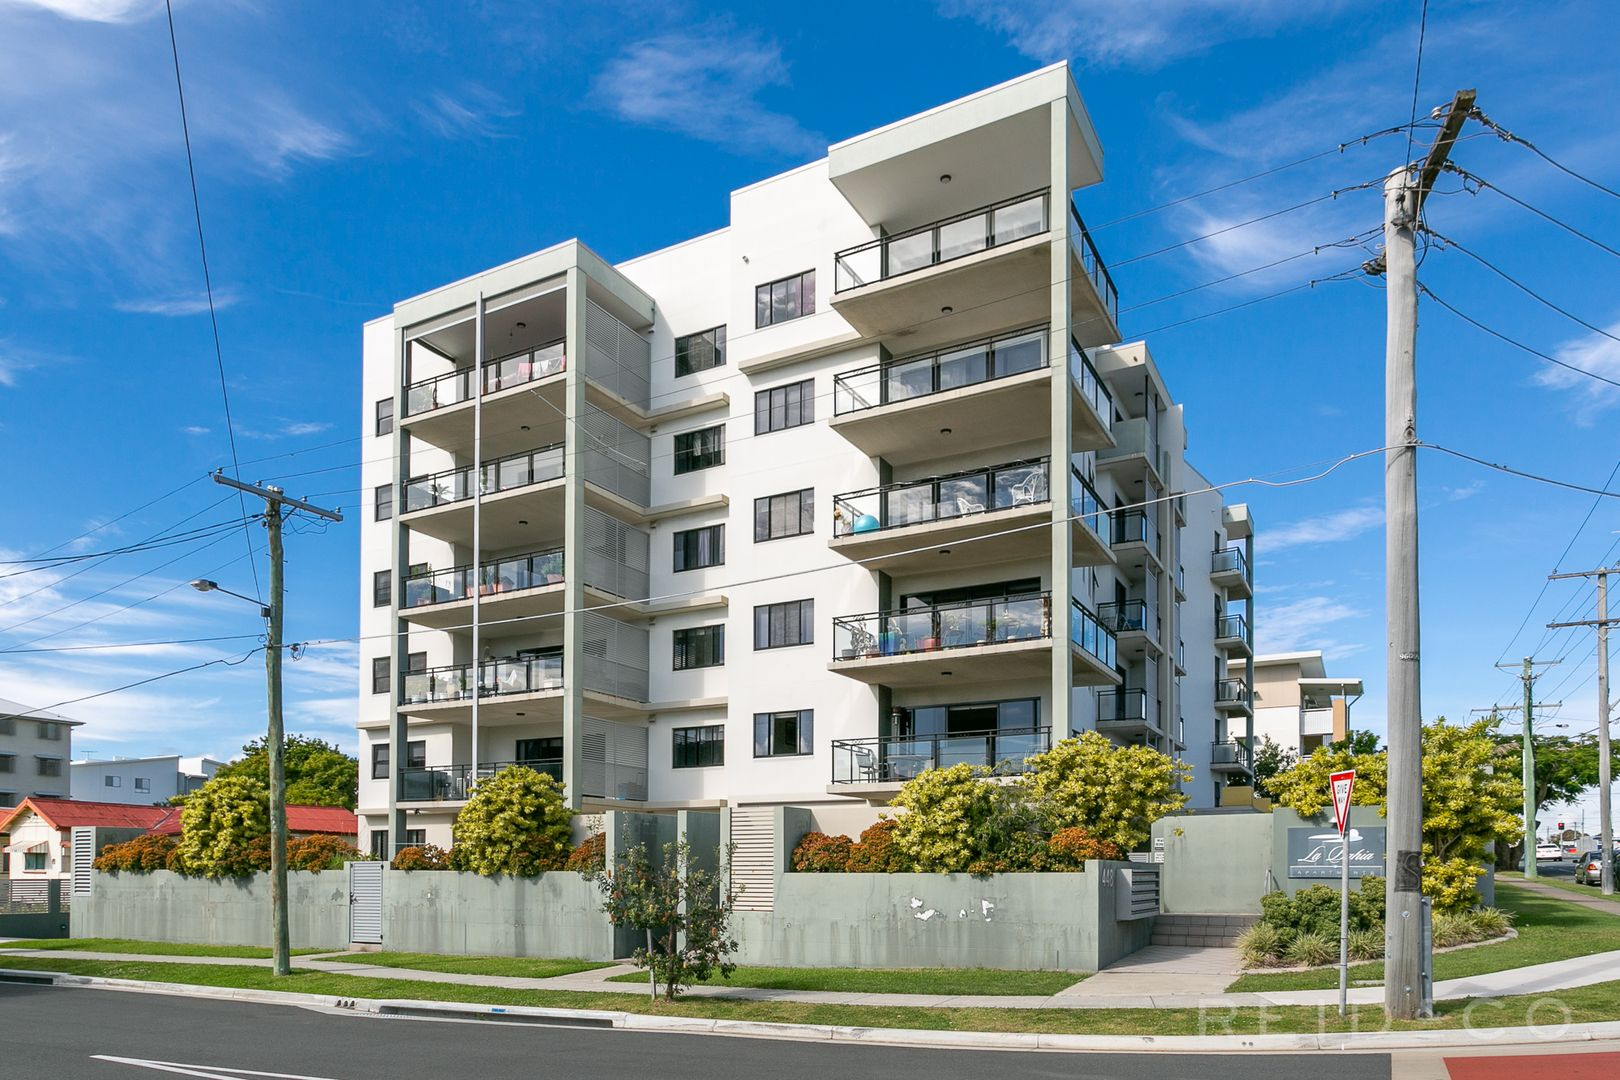 3/448 Oxley Avenue, Redcliffe QLD 4020